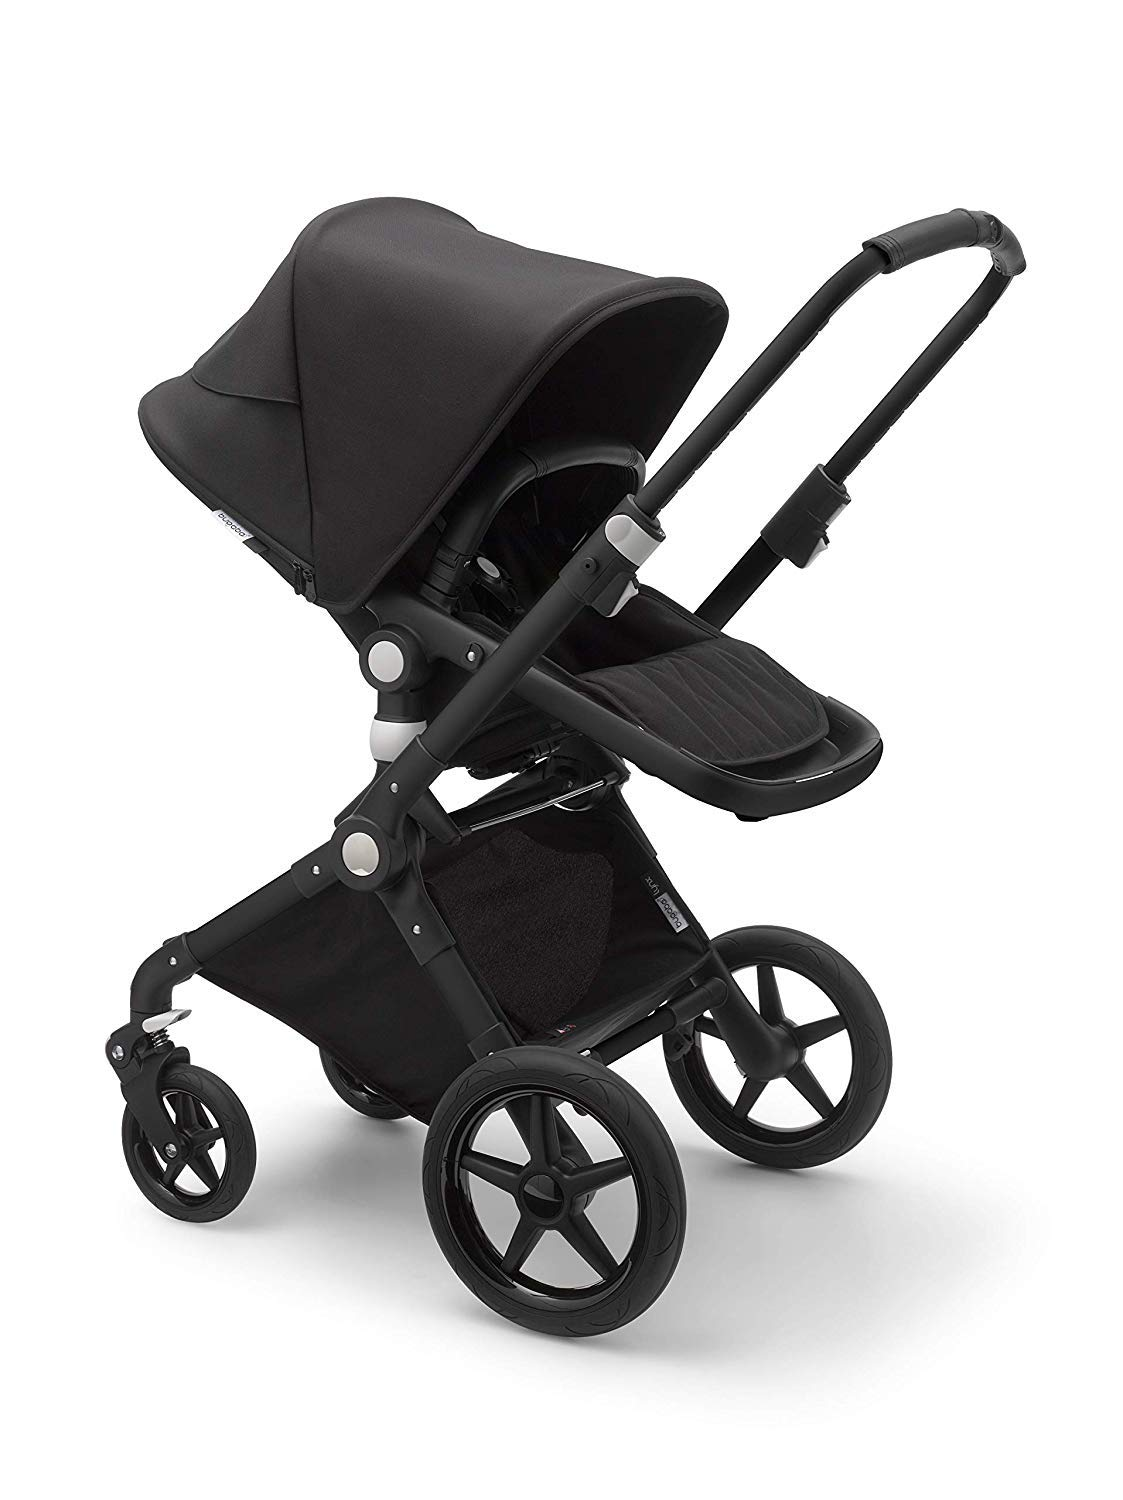 Bugaboo Lynx - The Lightest Full-Size Baby Stroller - All-Terrain Stroller with an Effortless Push and One-Handed Steering - Compatible with Bugaboo Turtle by Nuna Car Seat - Black